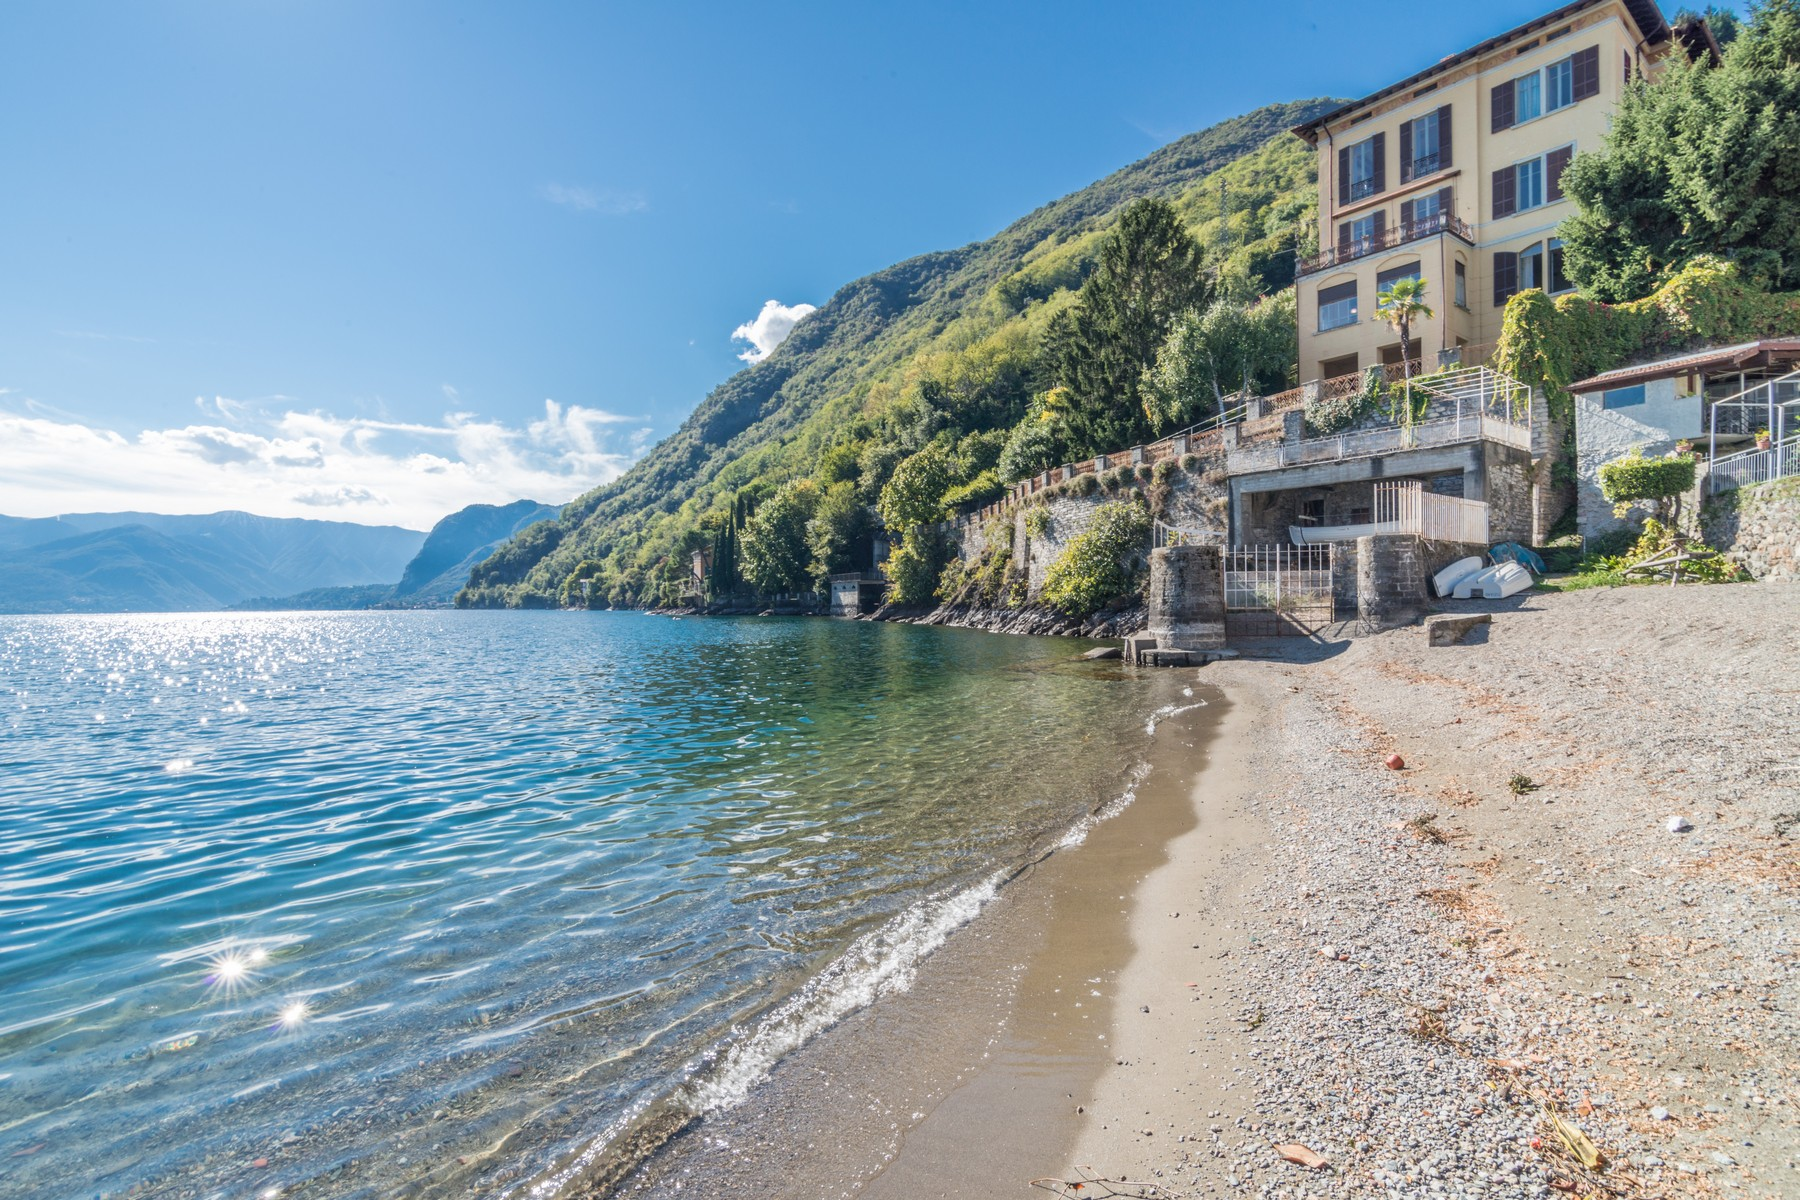 Single Family Home for Sale at Magnificient Villa pied dans l'eau Vicolo Ronchi Menaggio, Como 22017 Italy